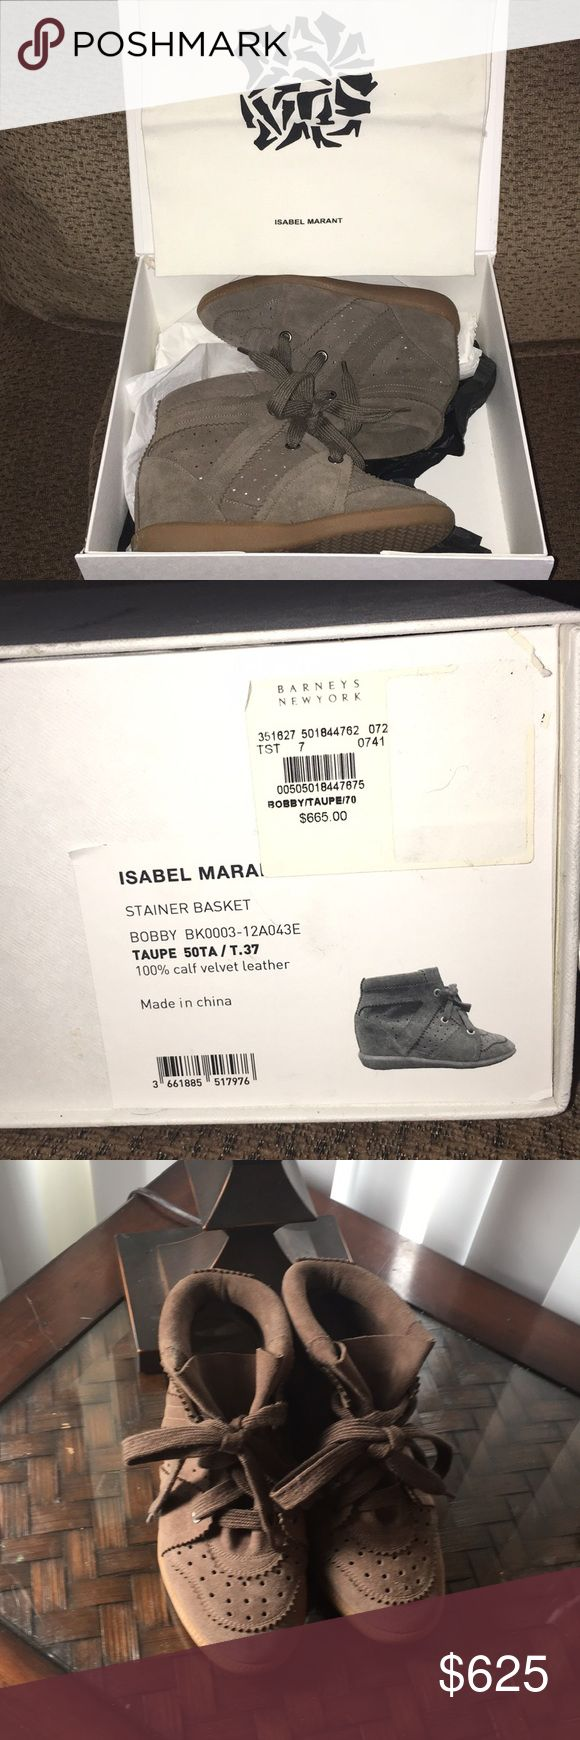 "NEW! Isabel Marant Stainer Basket ""Bobby"" Sneakers Taupe, 100% calf velvet. Never worn, new in box.  Very pretty and comfortable. Please let me know if you have any questions! Isabel Marant Shoes"